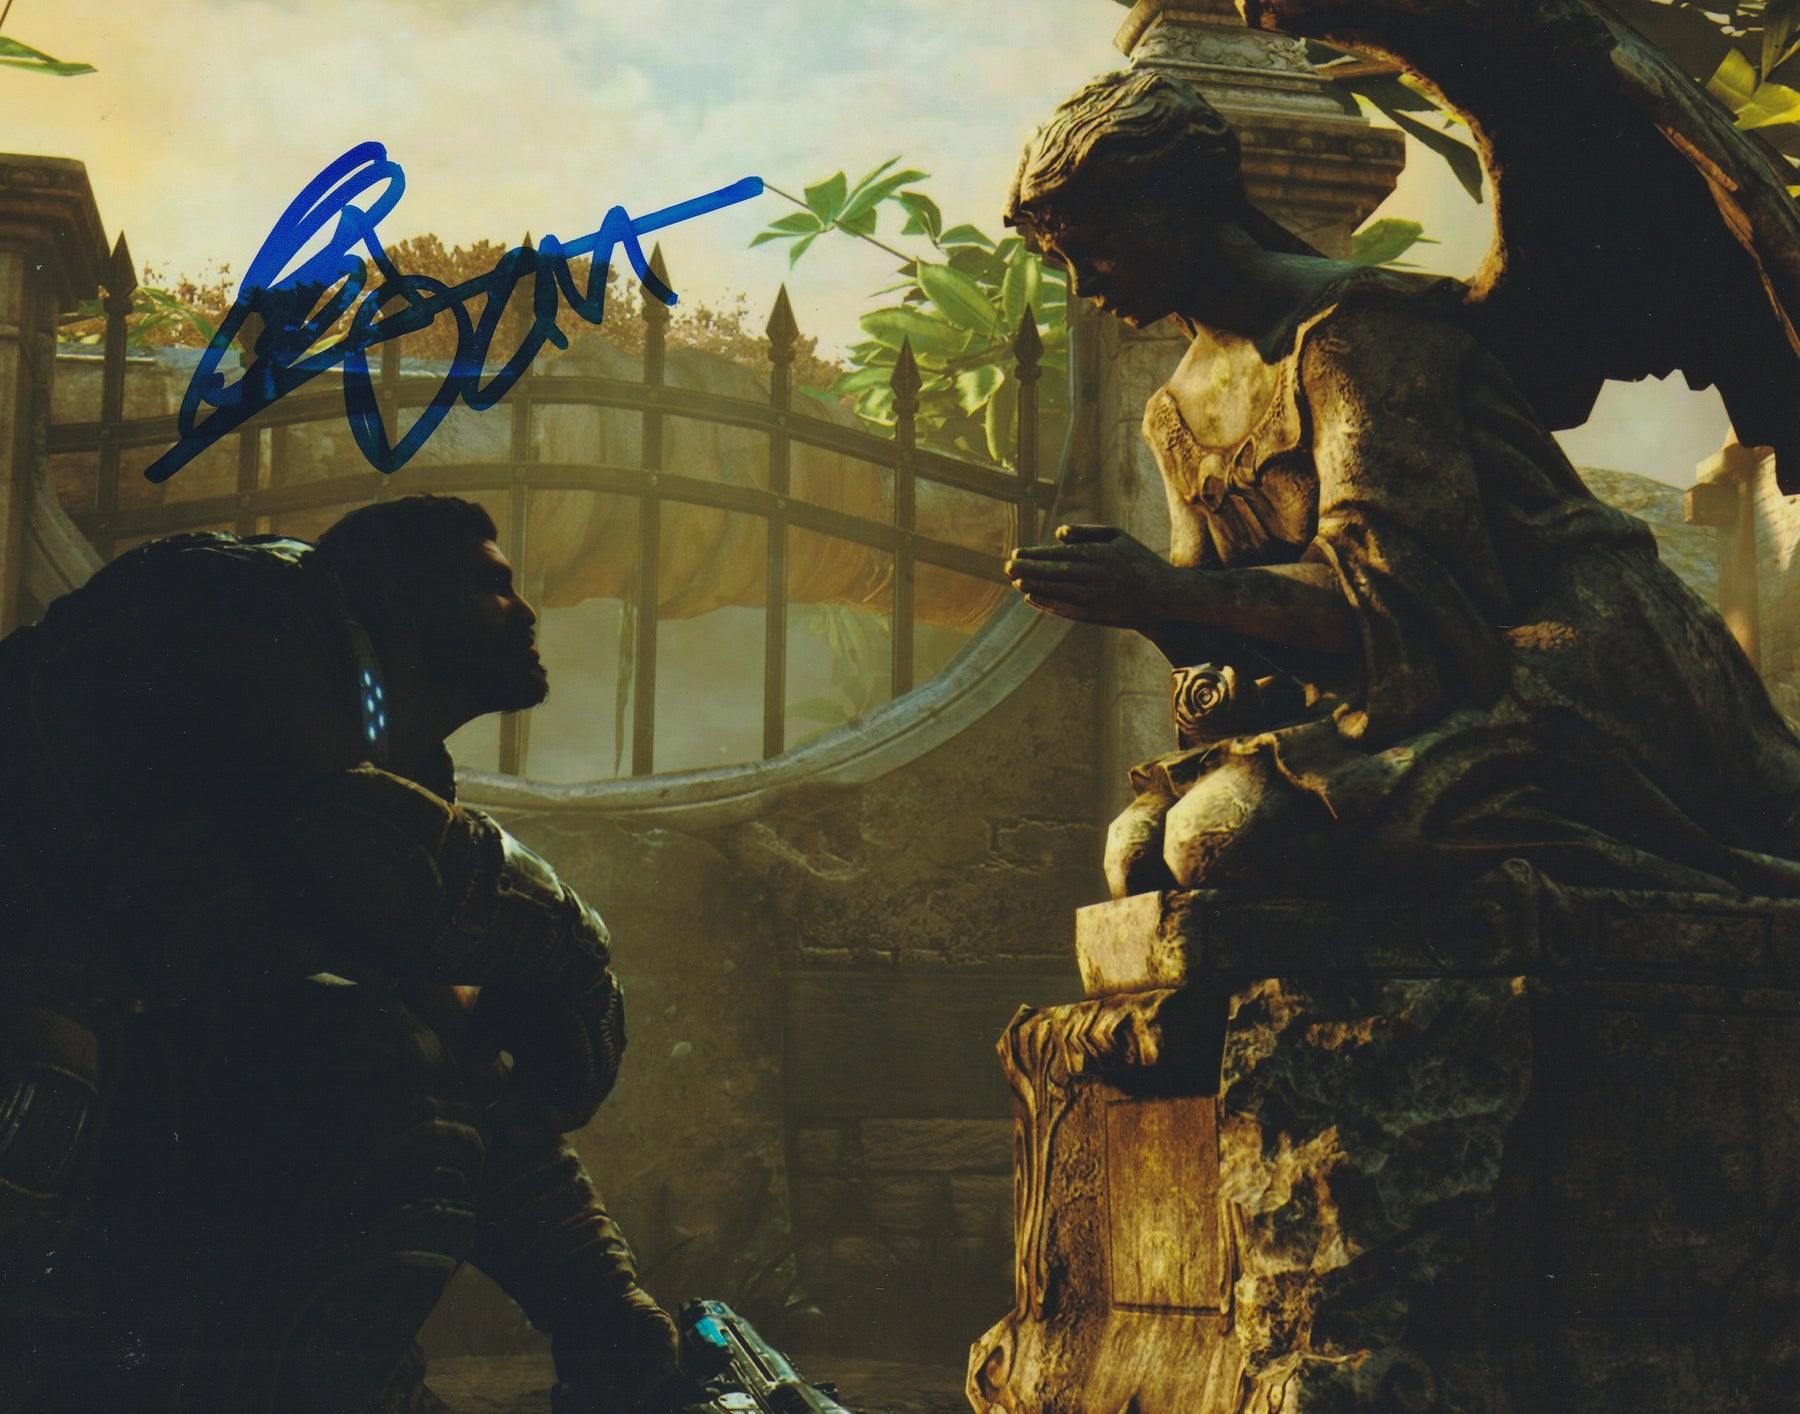 Carlos Ferro Autograph 8x10 Gears of War Photo Dominic Santiago Signed COA Z5